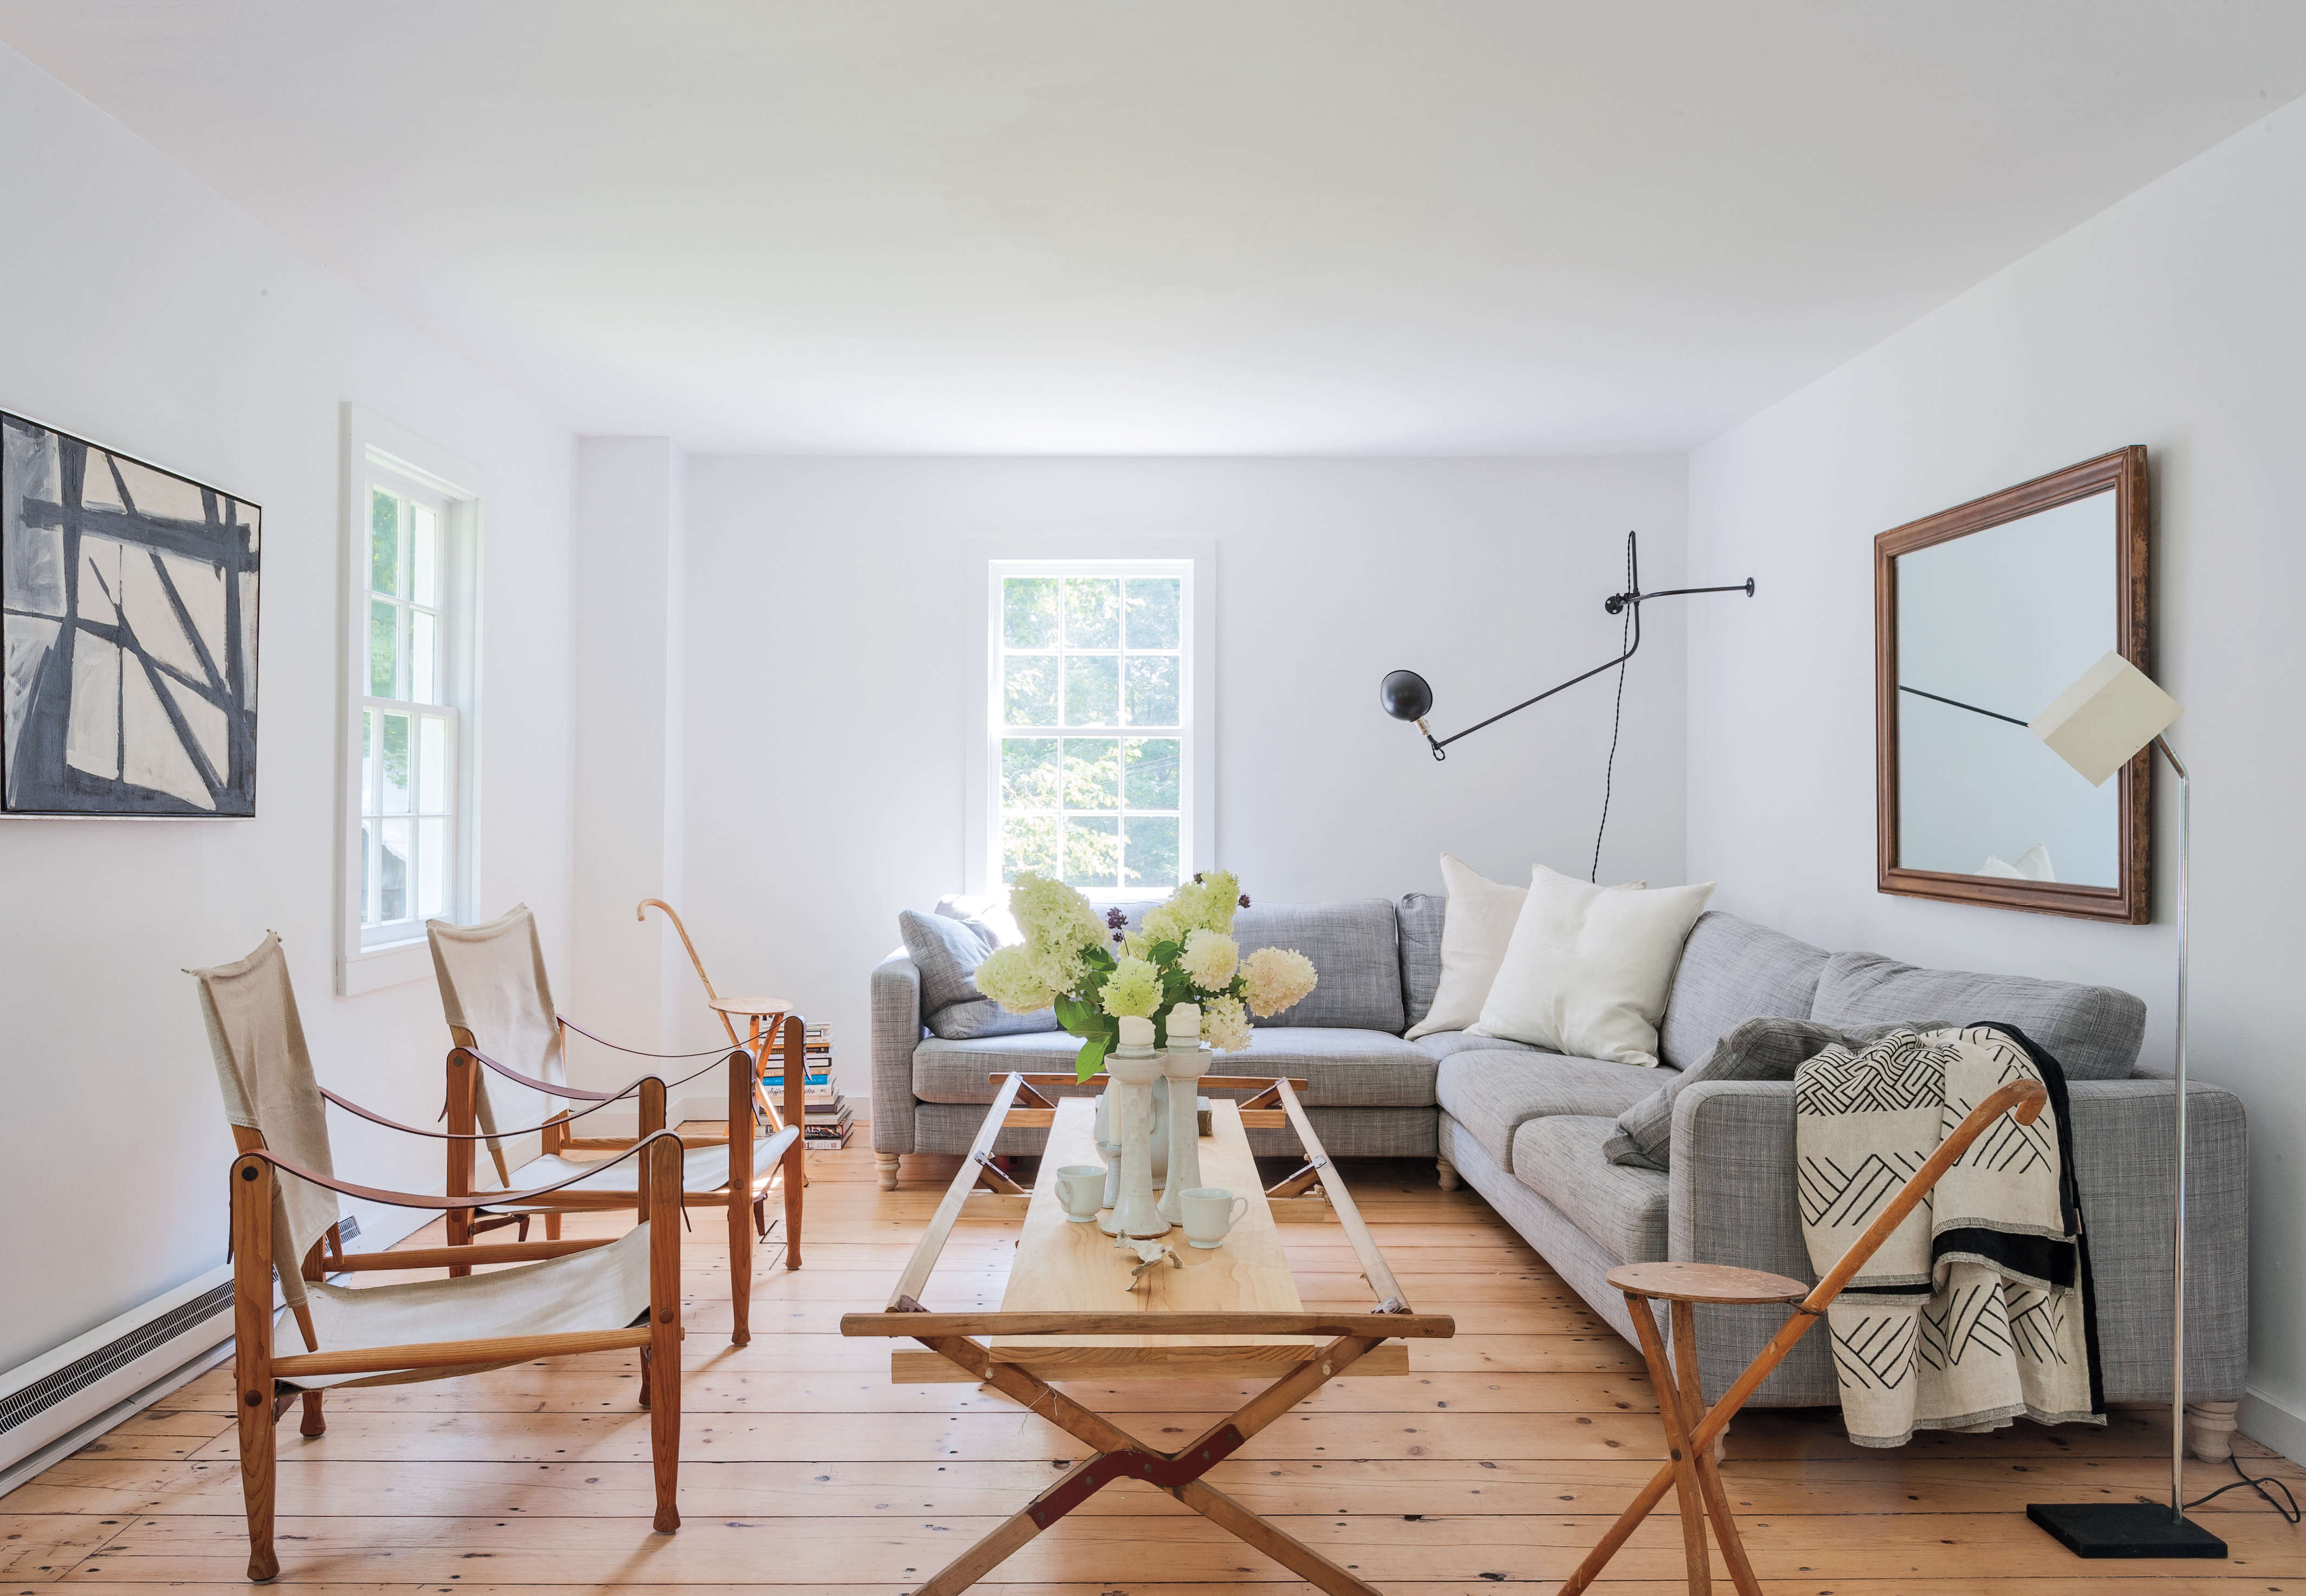 Expert Advice: 11 Tips for Making a Room Look Bigger - Remodelista